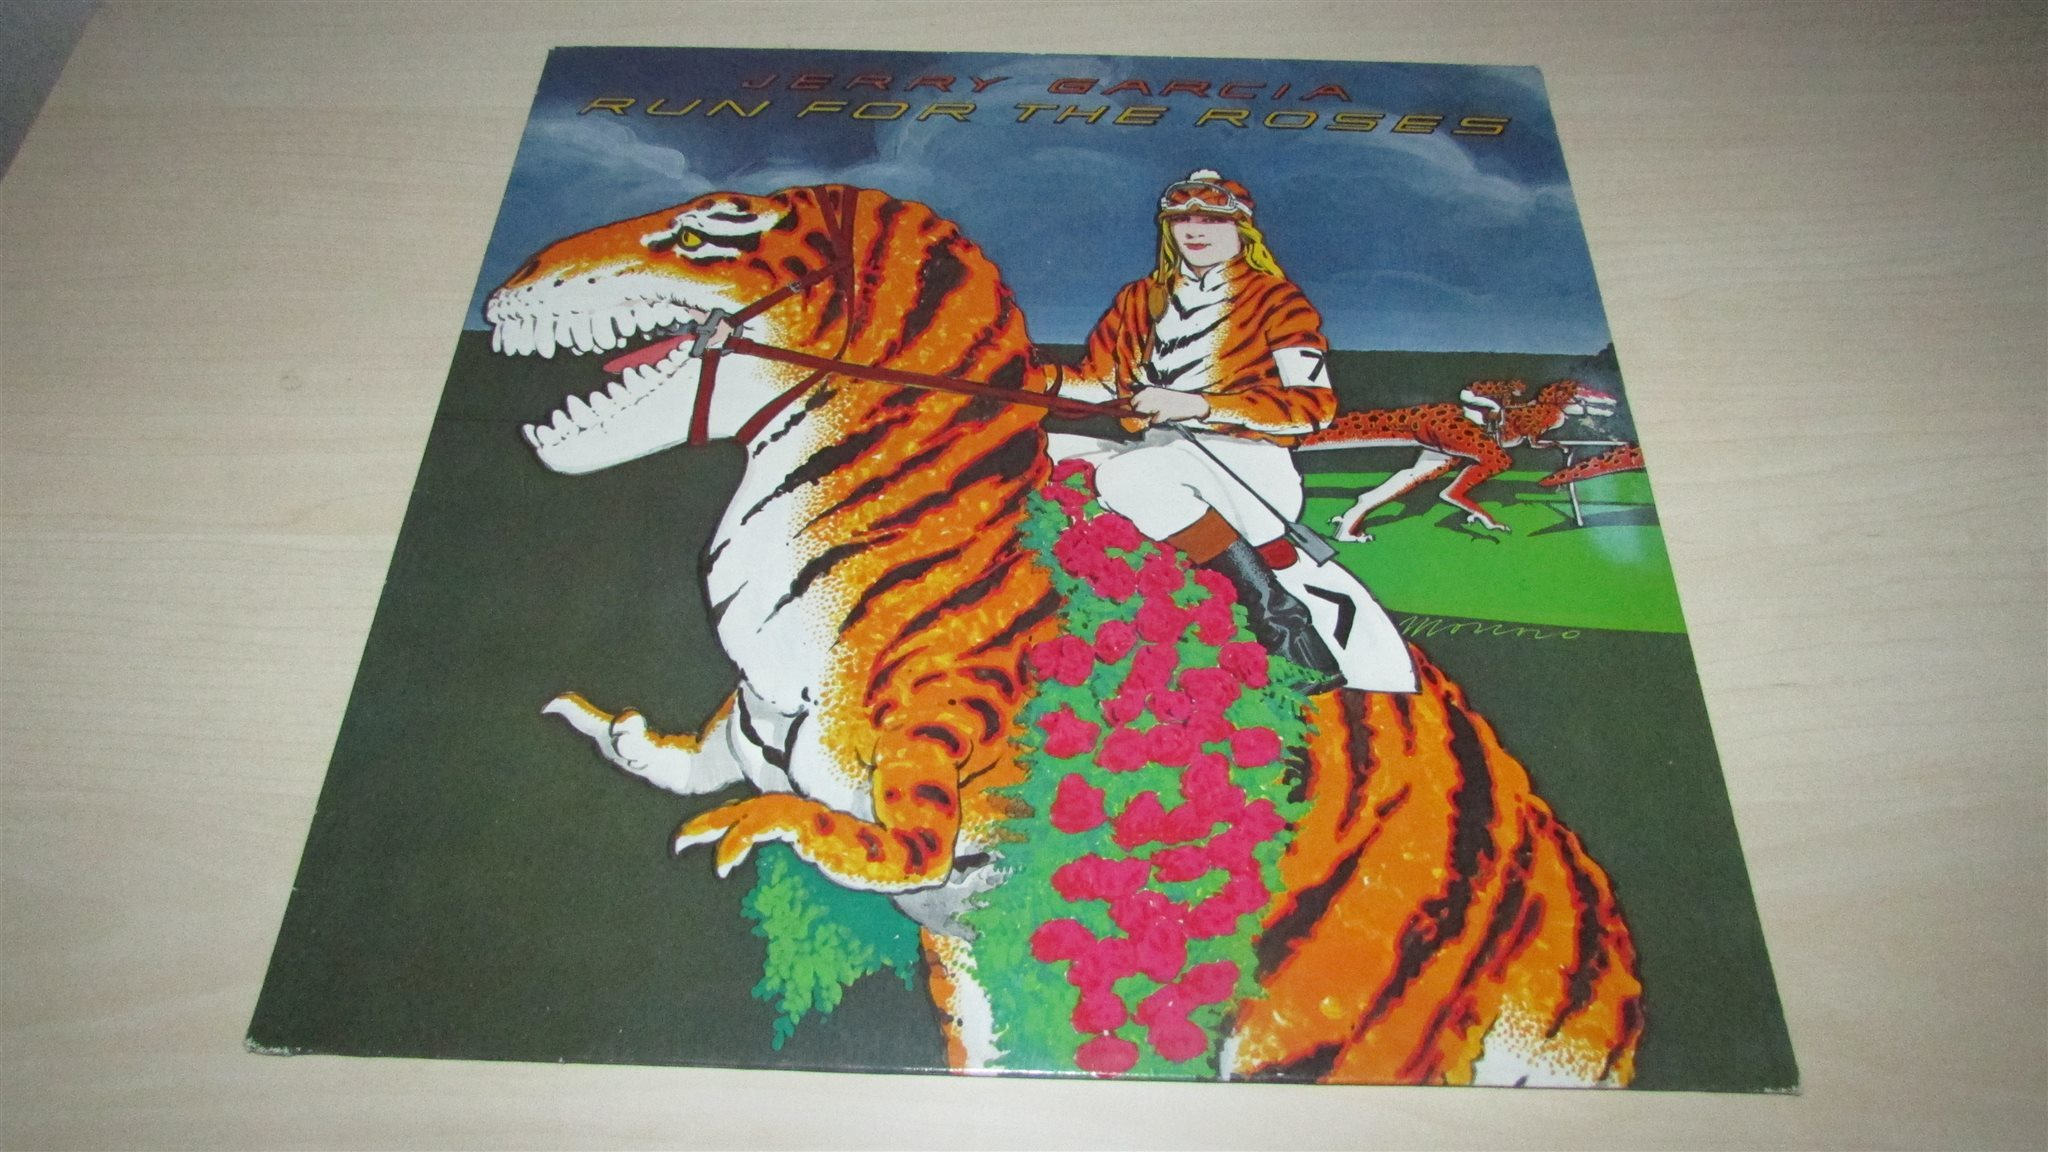 JERRY GARCIA - RUN FOR THE ROSES - LP - 1982 - GRATEFUL DEAD